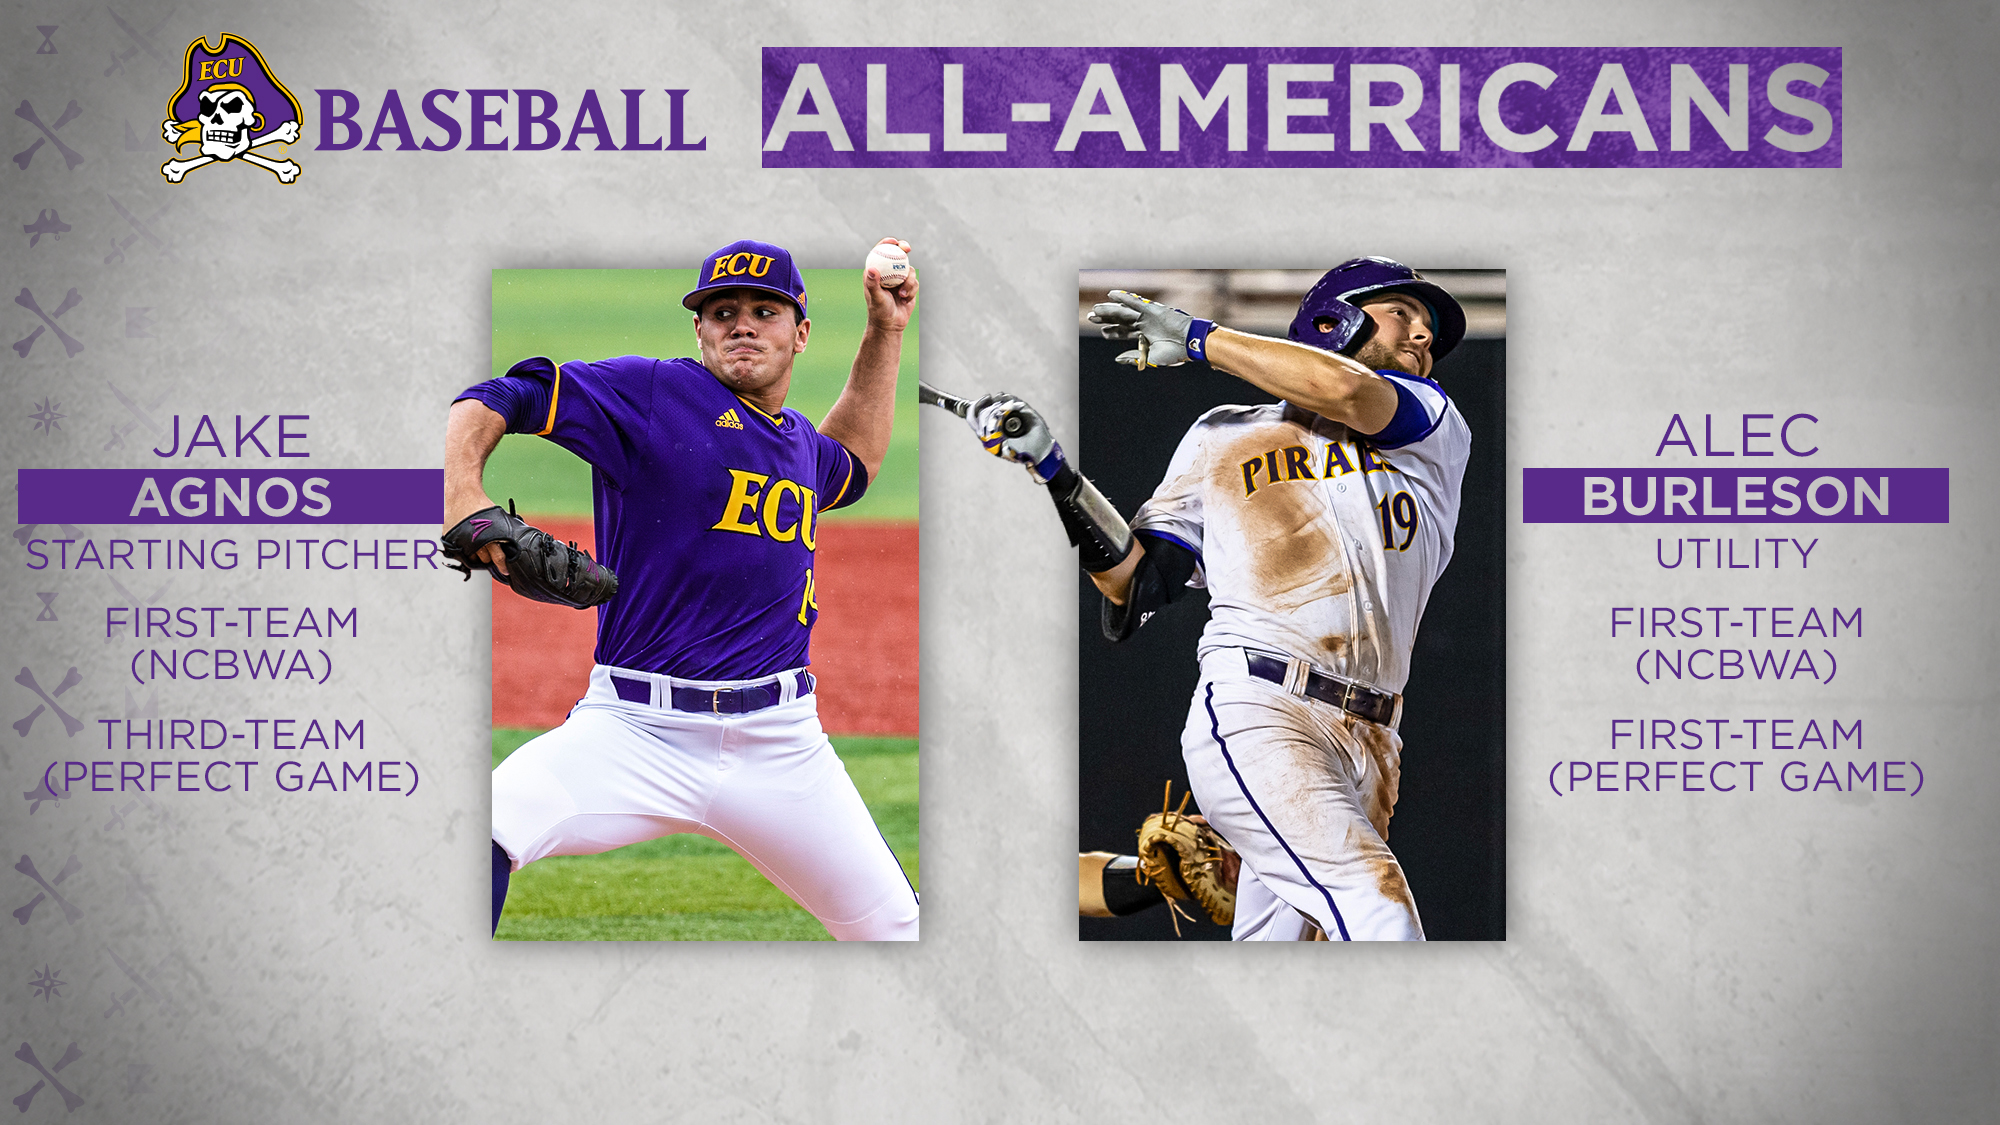 Agnos And Burleson Earn Two More All-America Honors - East Carolina